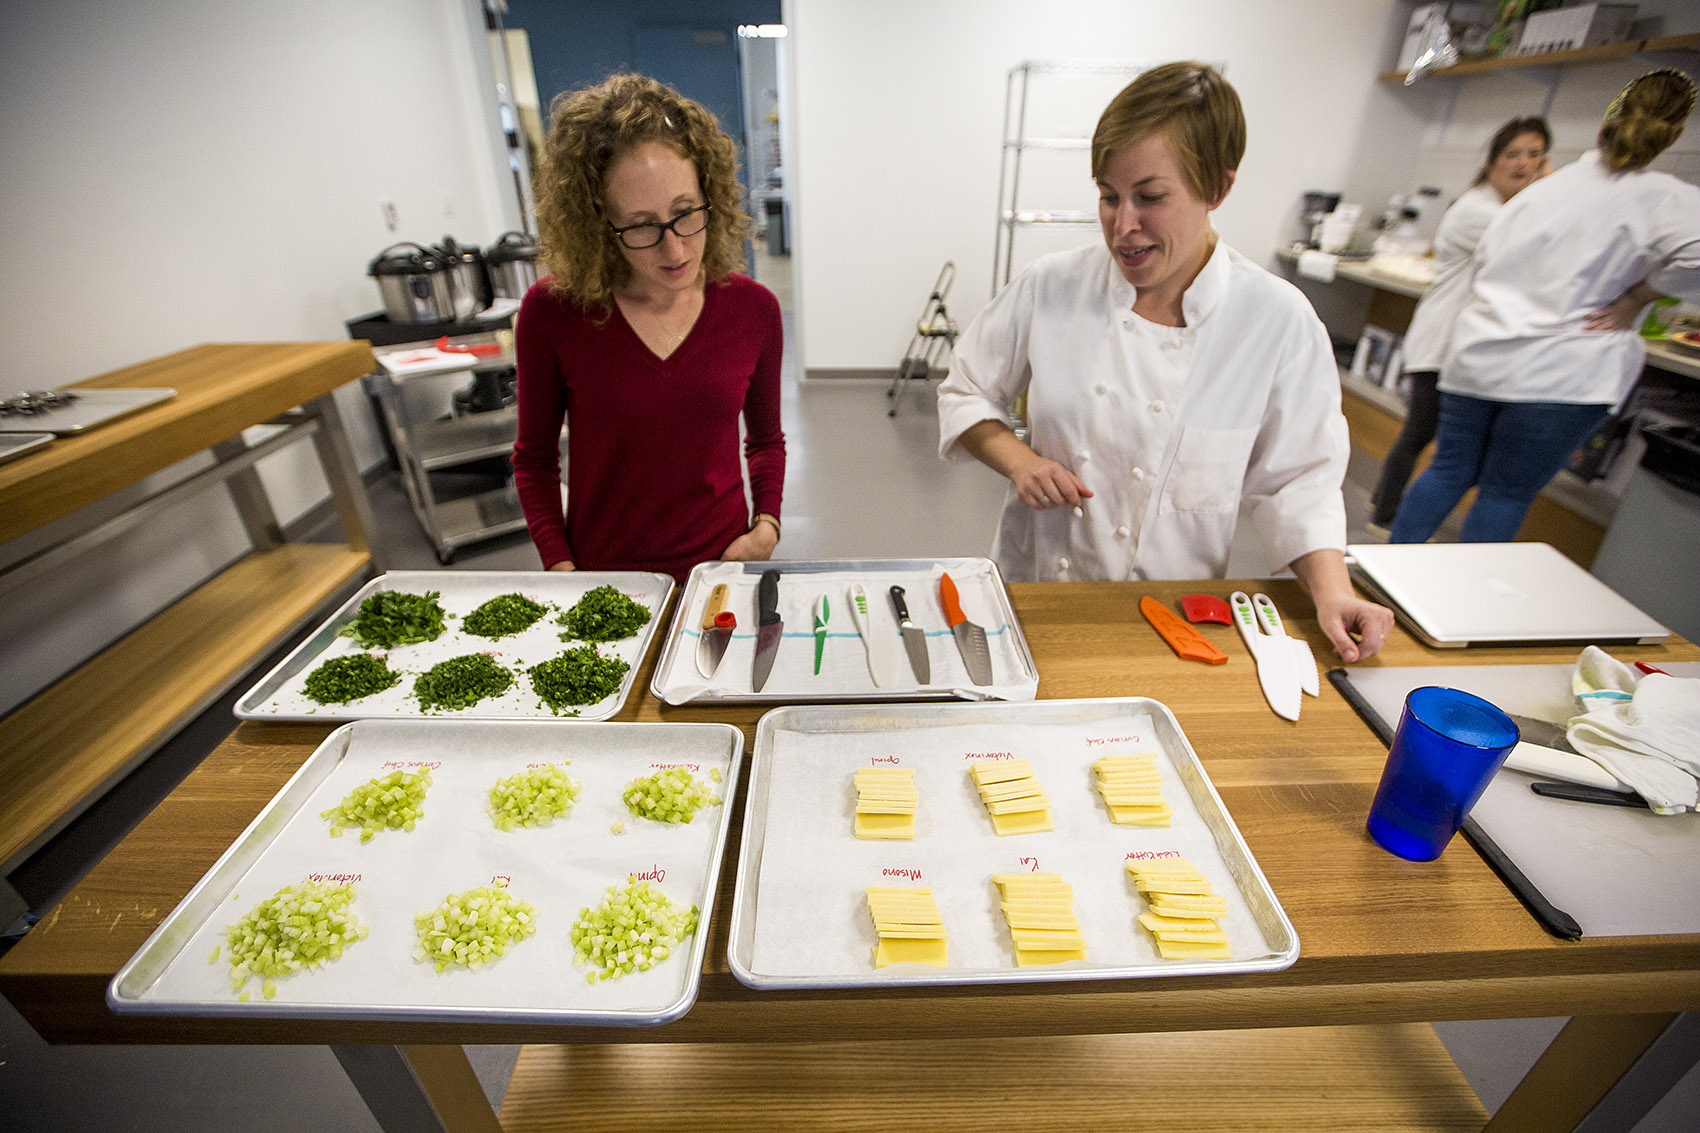 Americas Test Kitchen Moves From Its Homey Brookline Digs To Snazzier Seaport Studios  The ARTery